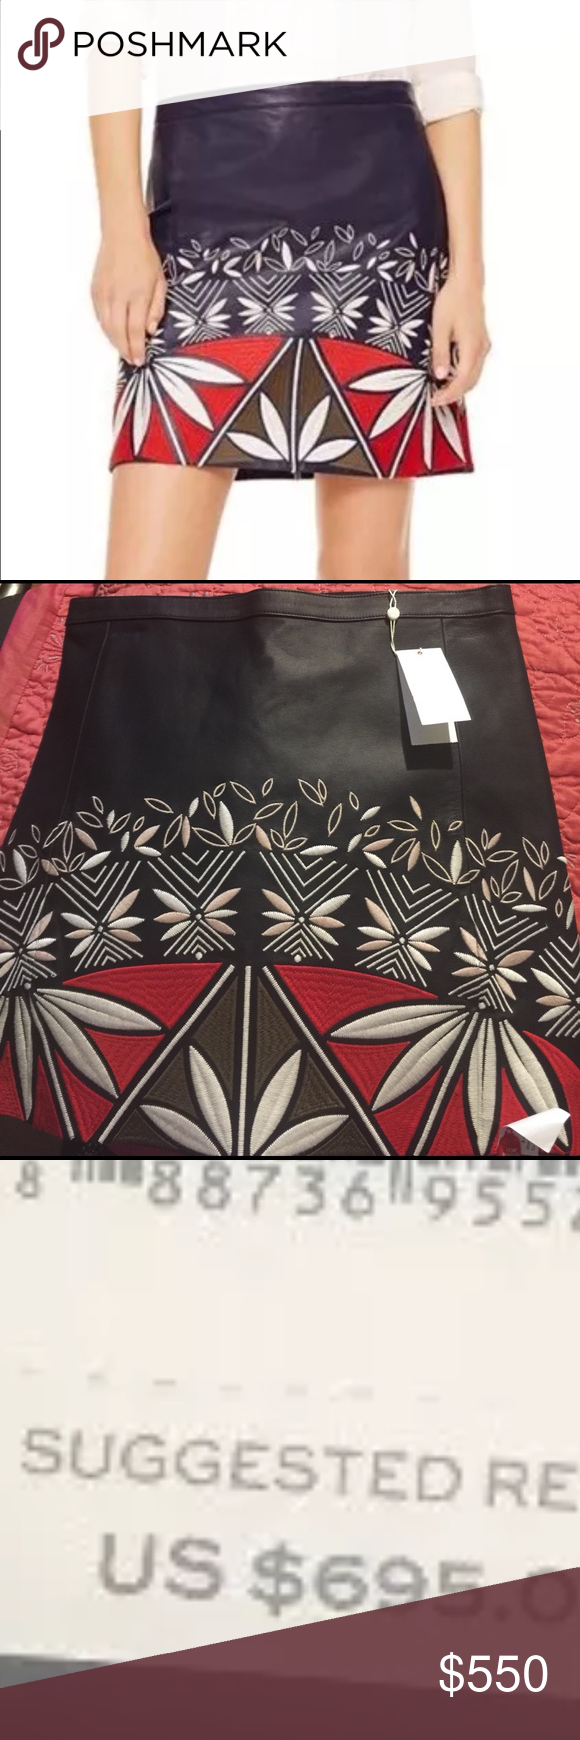 Tory burch skirt Tory burch skirt. Authentic.this gorgeous skirt is leather with embroidered pattern to perfection. A must have. Brand new with tags . Tory Burch Skirts Midi